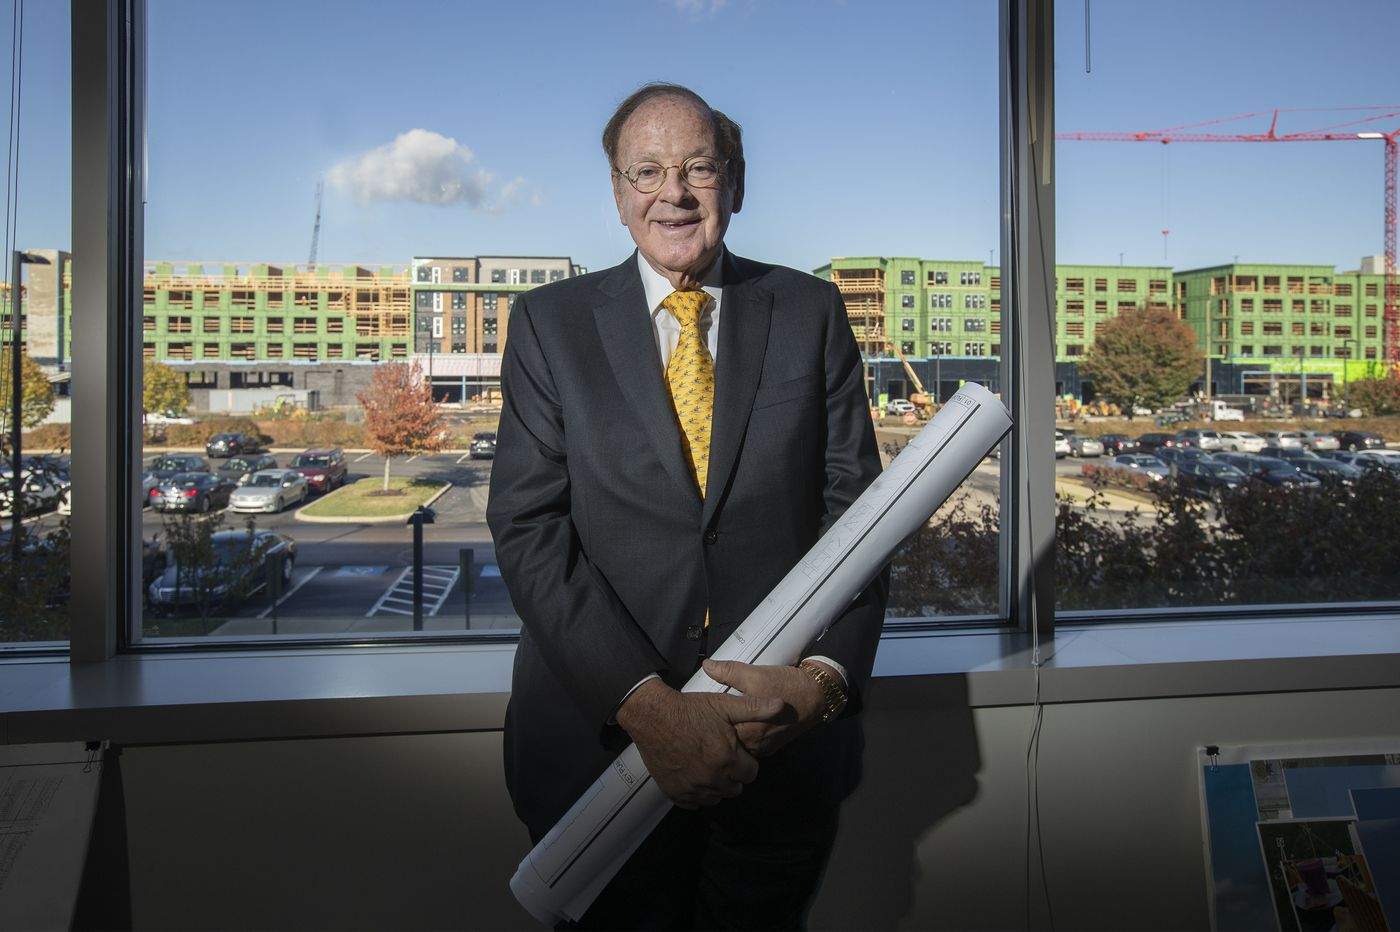 Bruce Toll gets offers every day to invest. He sees promise in cutting-edge biotech | Industry Icons